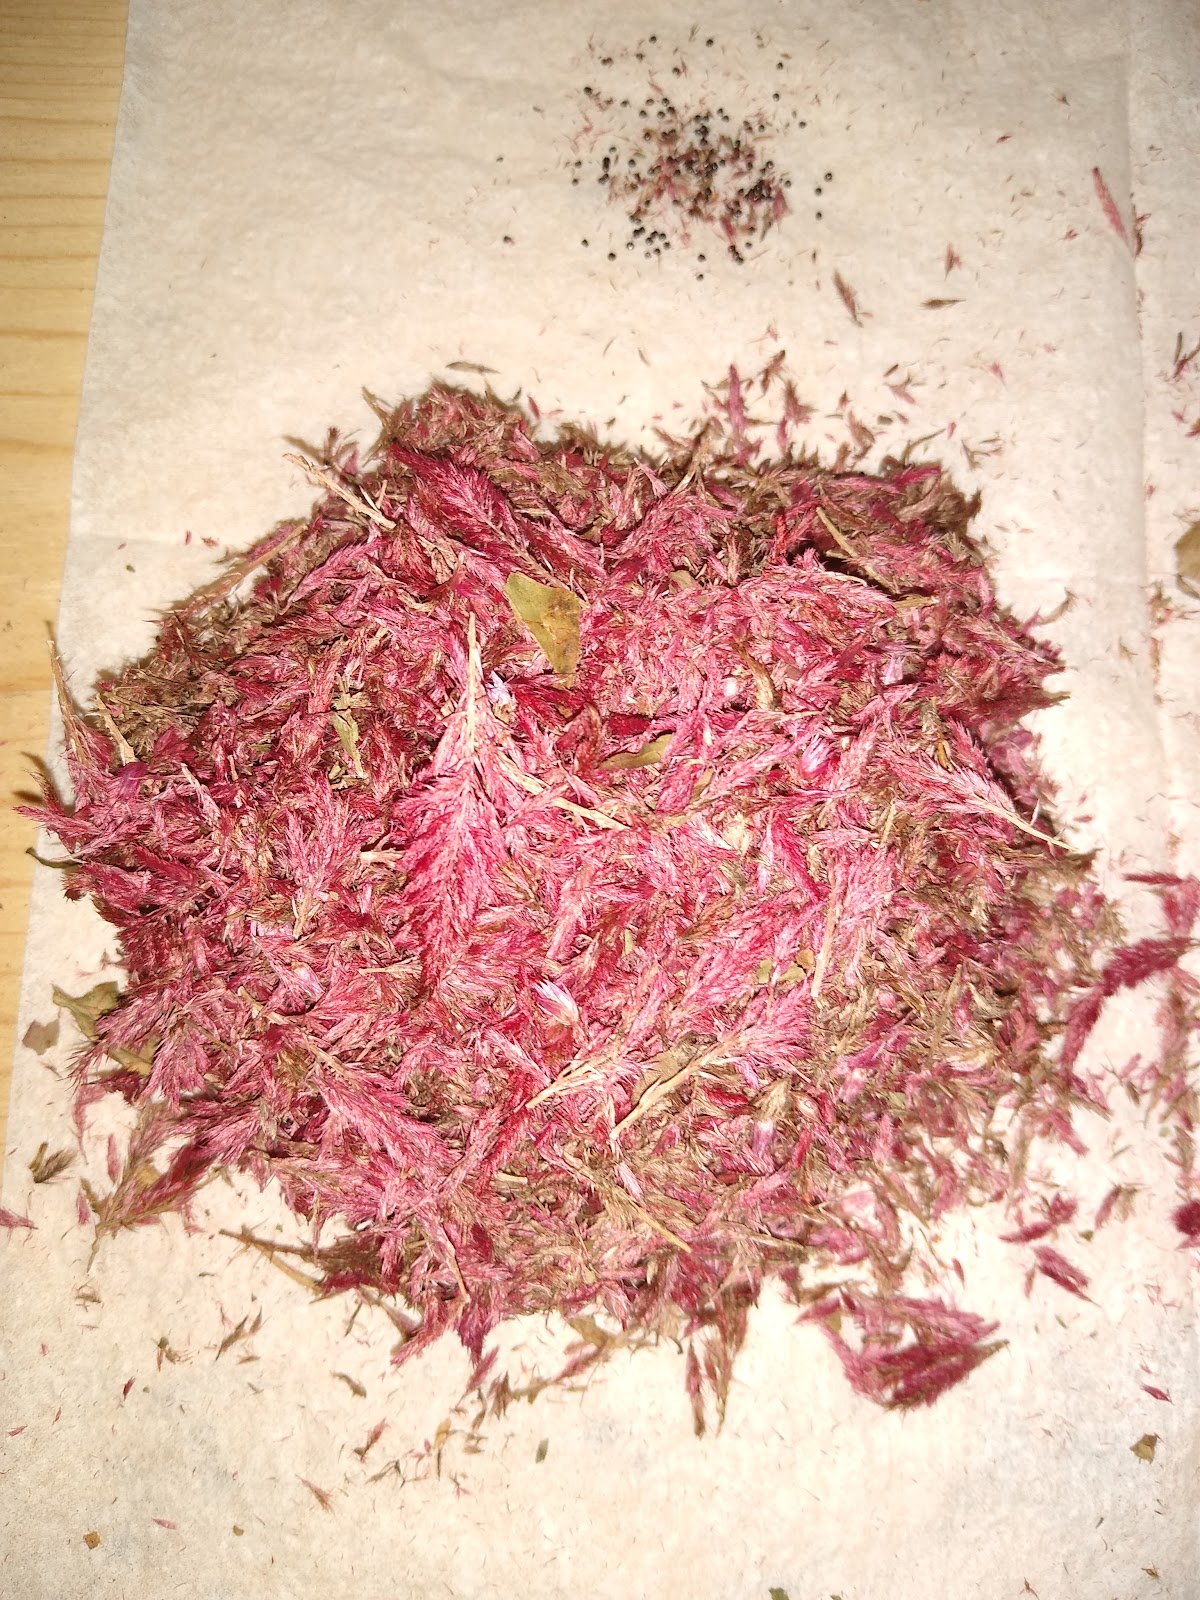 Pile of dried celosia petals